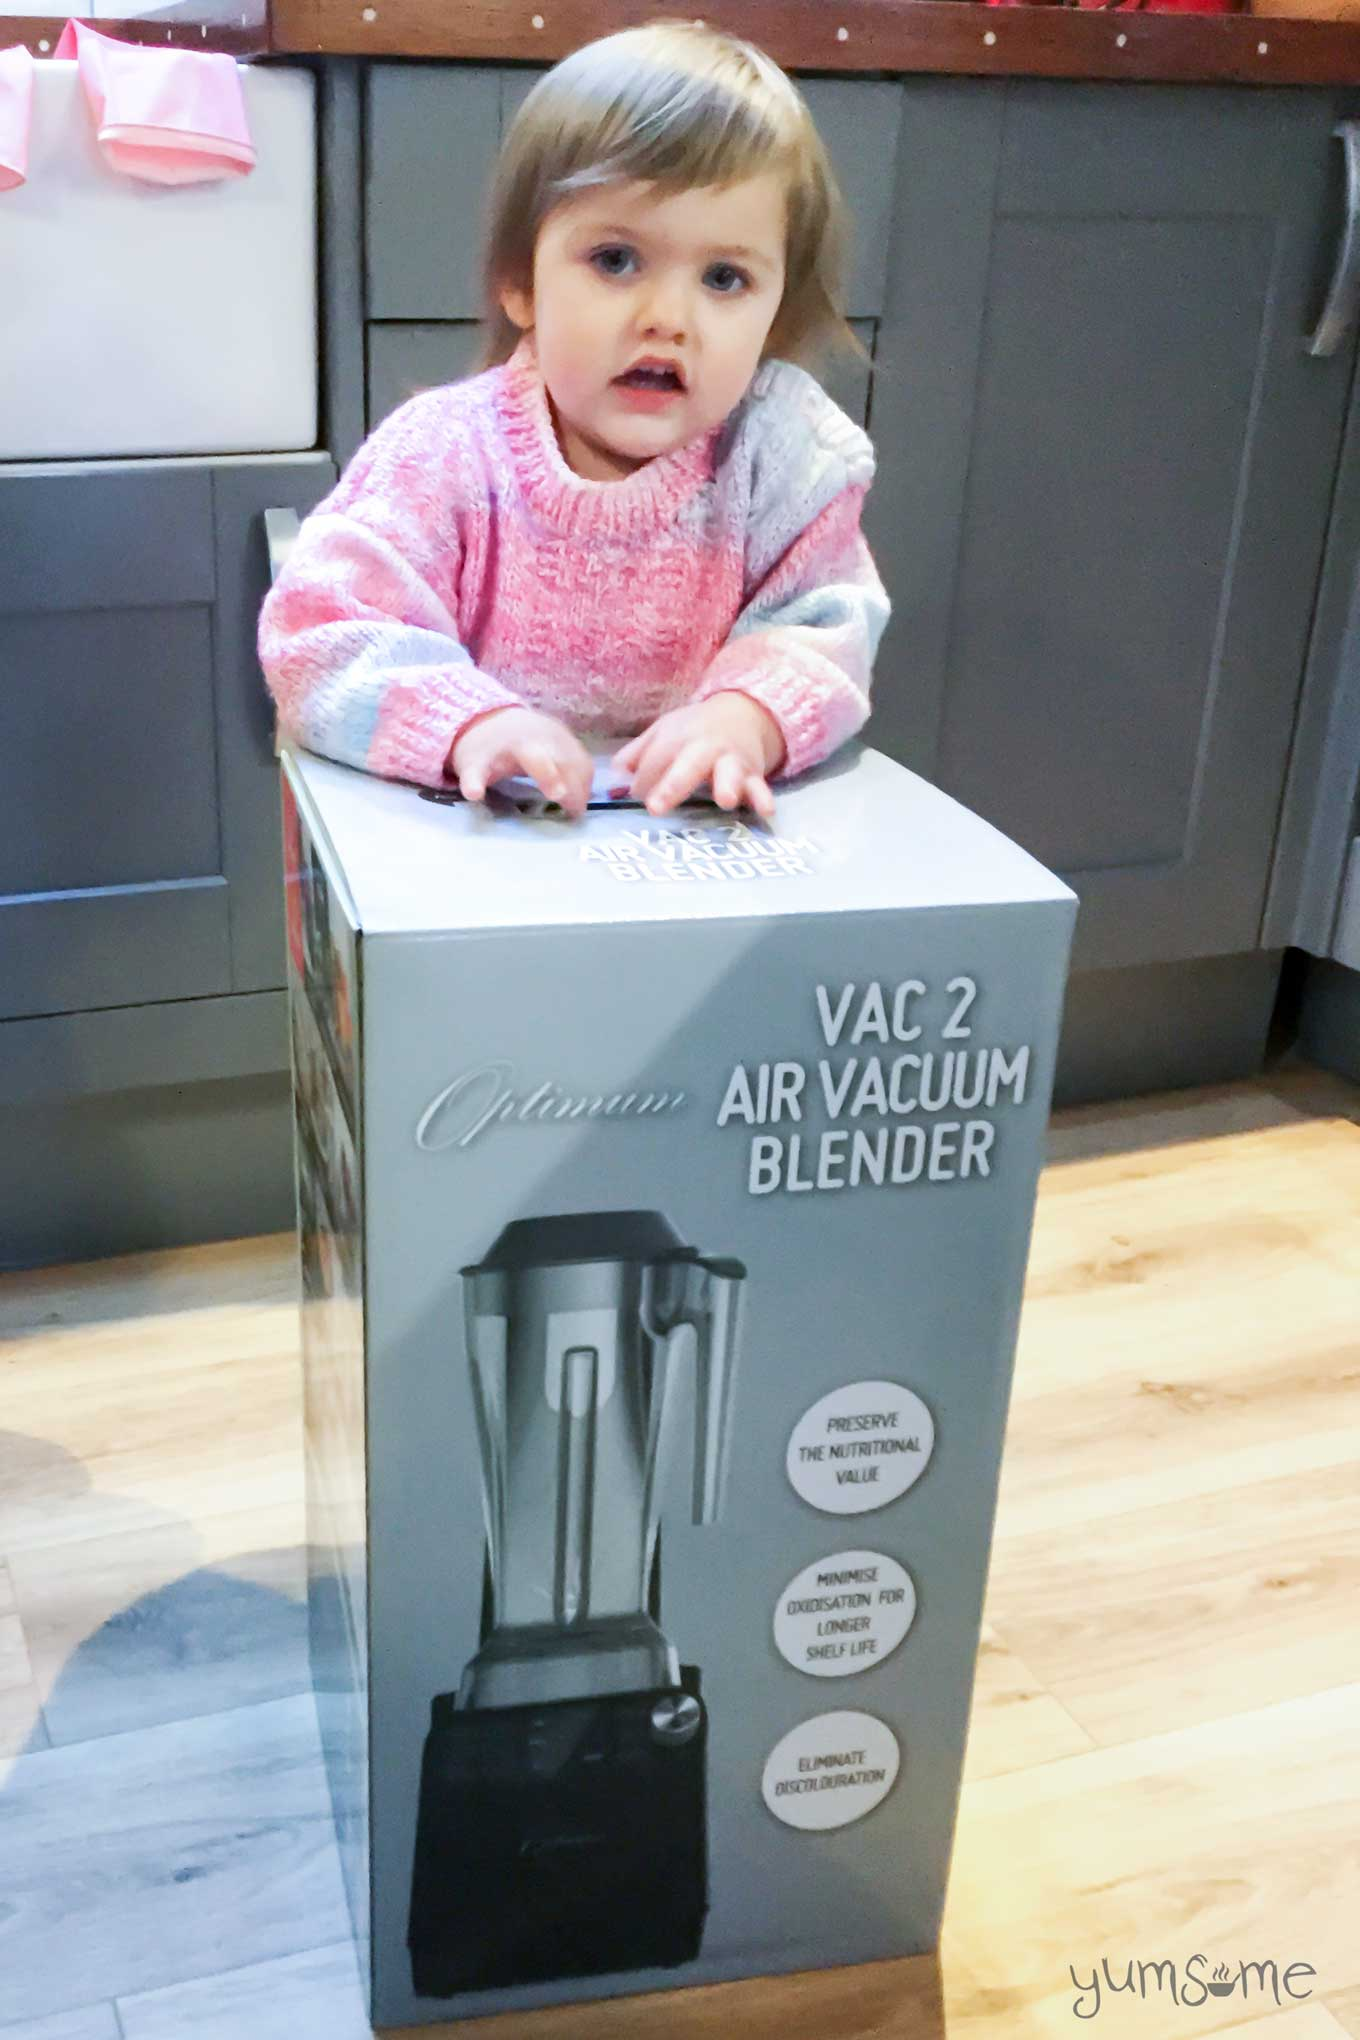 Raven and the froothie optimum vac2 air vacuum blender box | yumsome.com